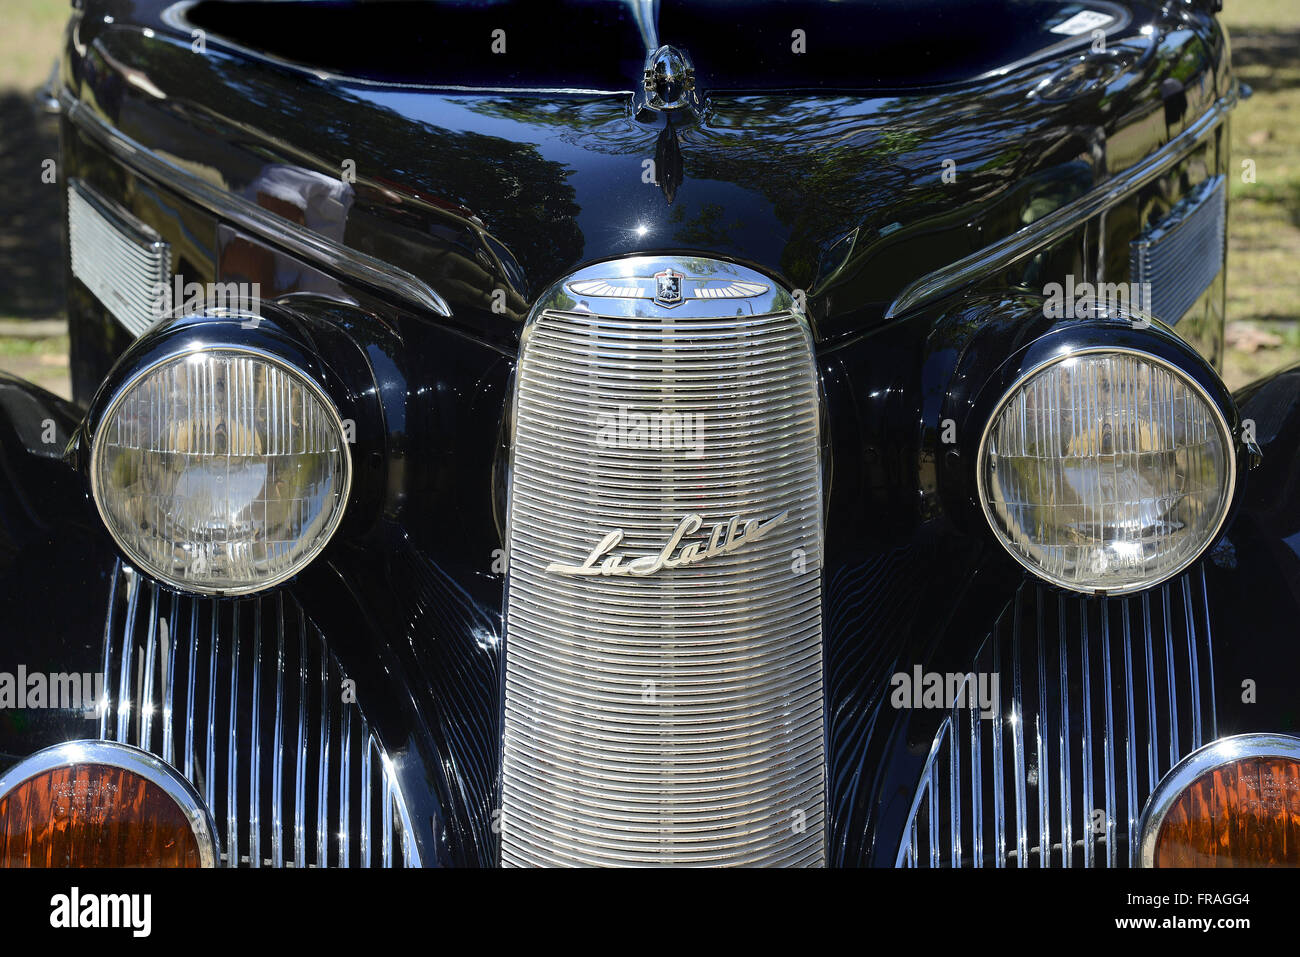 Front Detail of La Salle exposed in fair vintage cars in Flamengo - Brand marketed - Stock Image